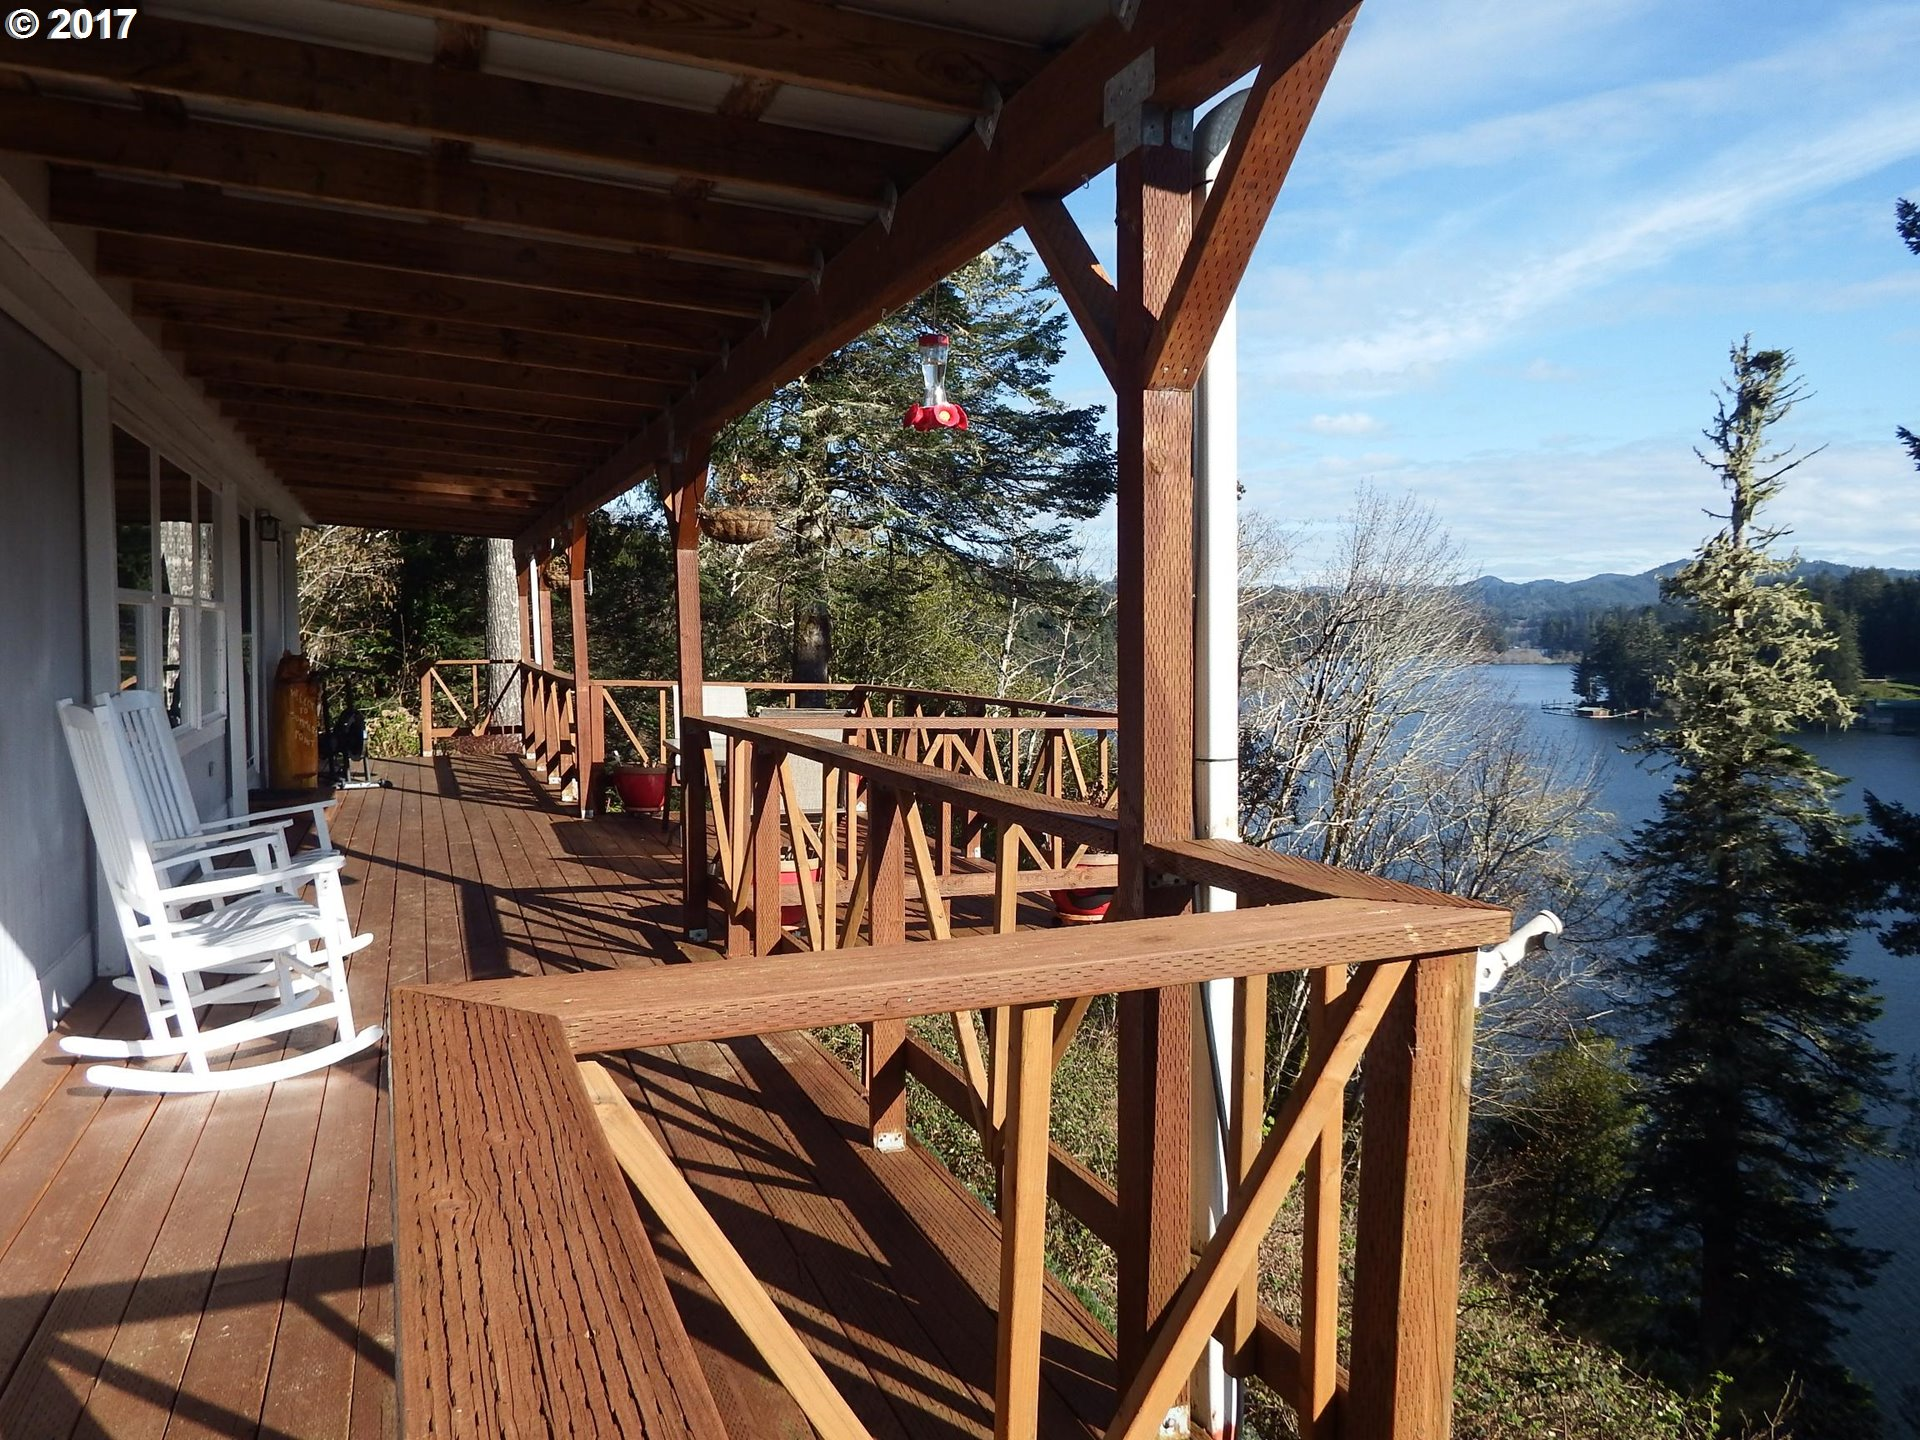 407 TENMILE TR, Lakeside, OR 97449